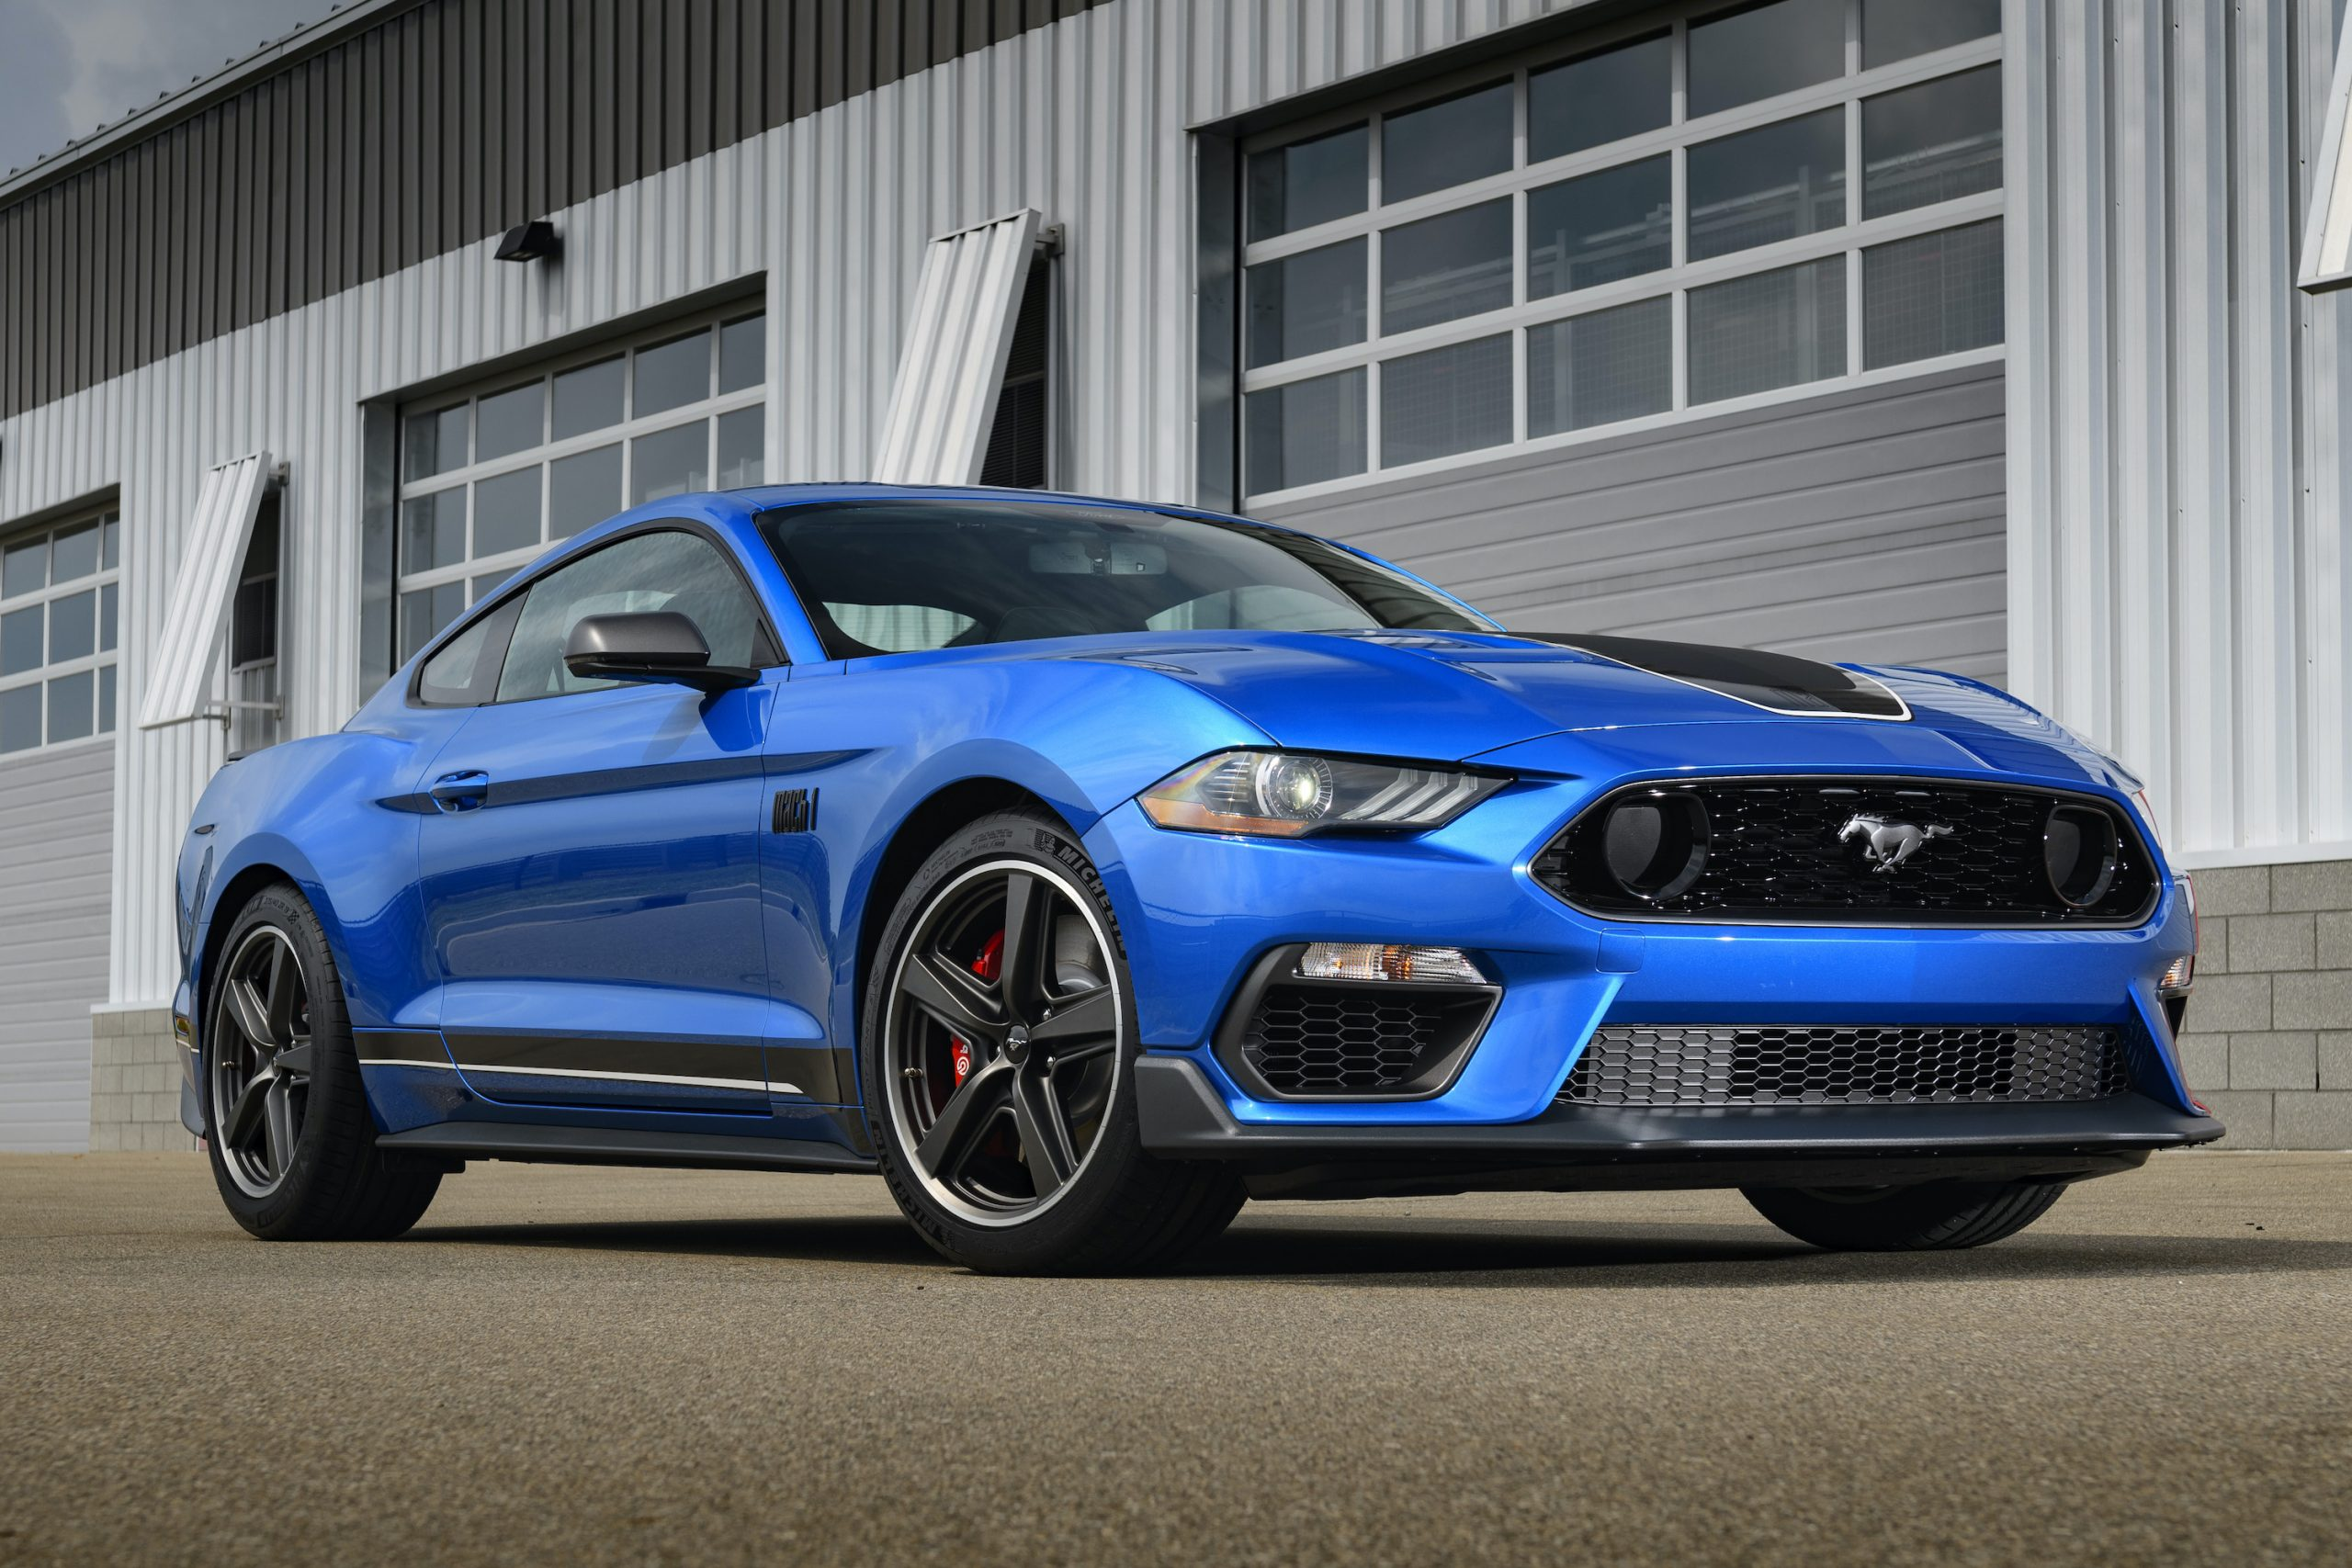 2021 Ford Mustang Mach 1 front three-quarter